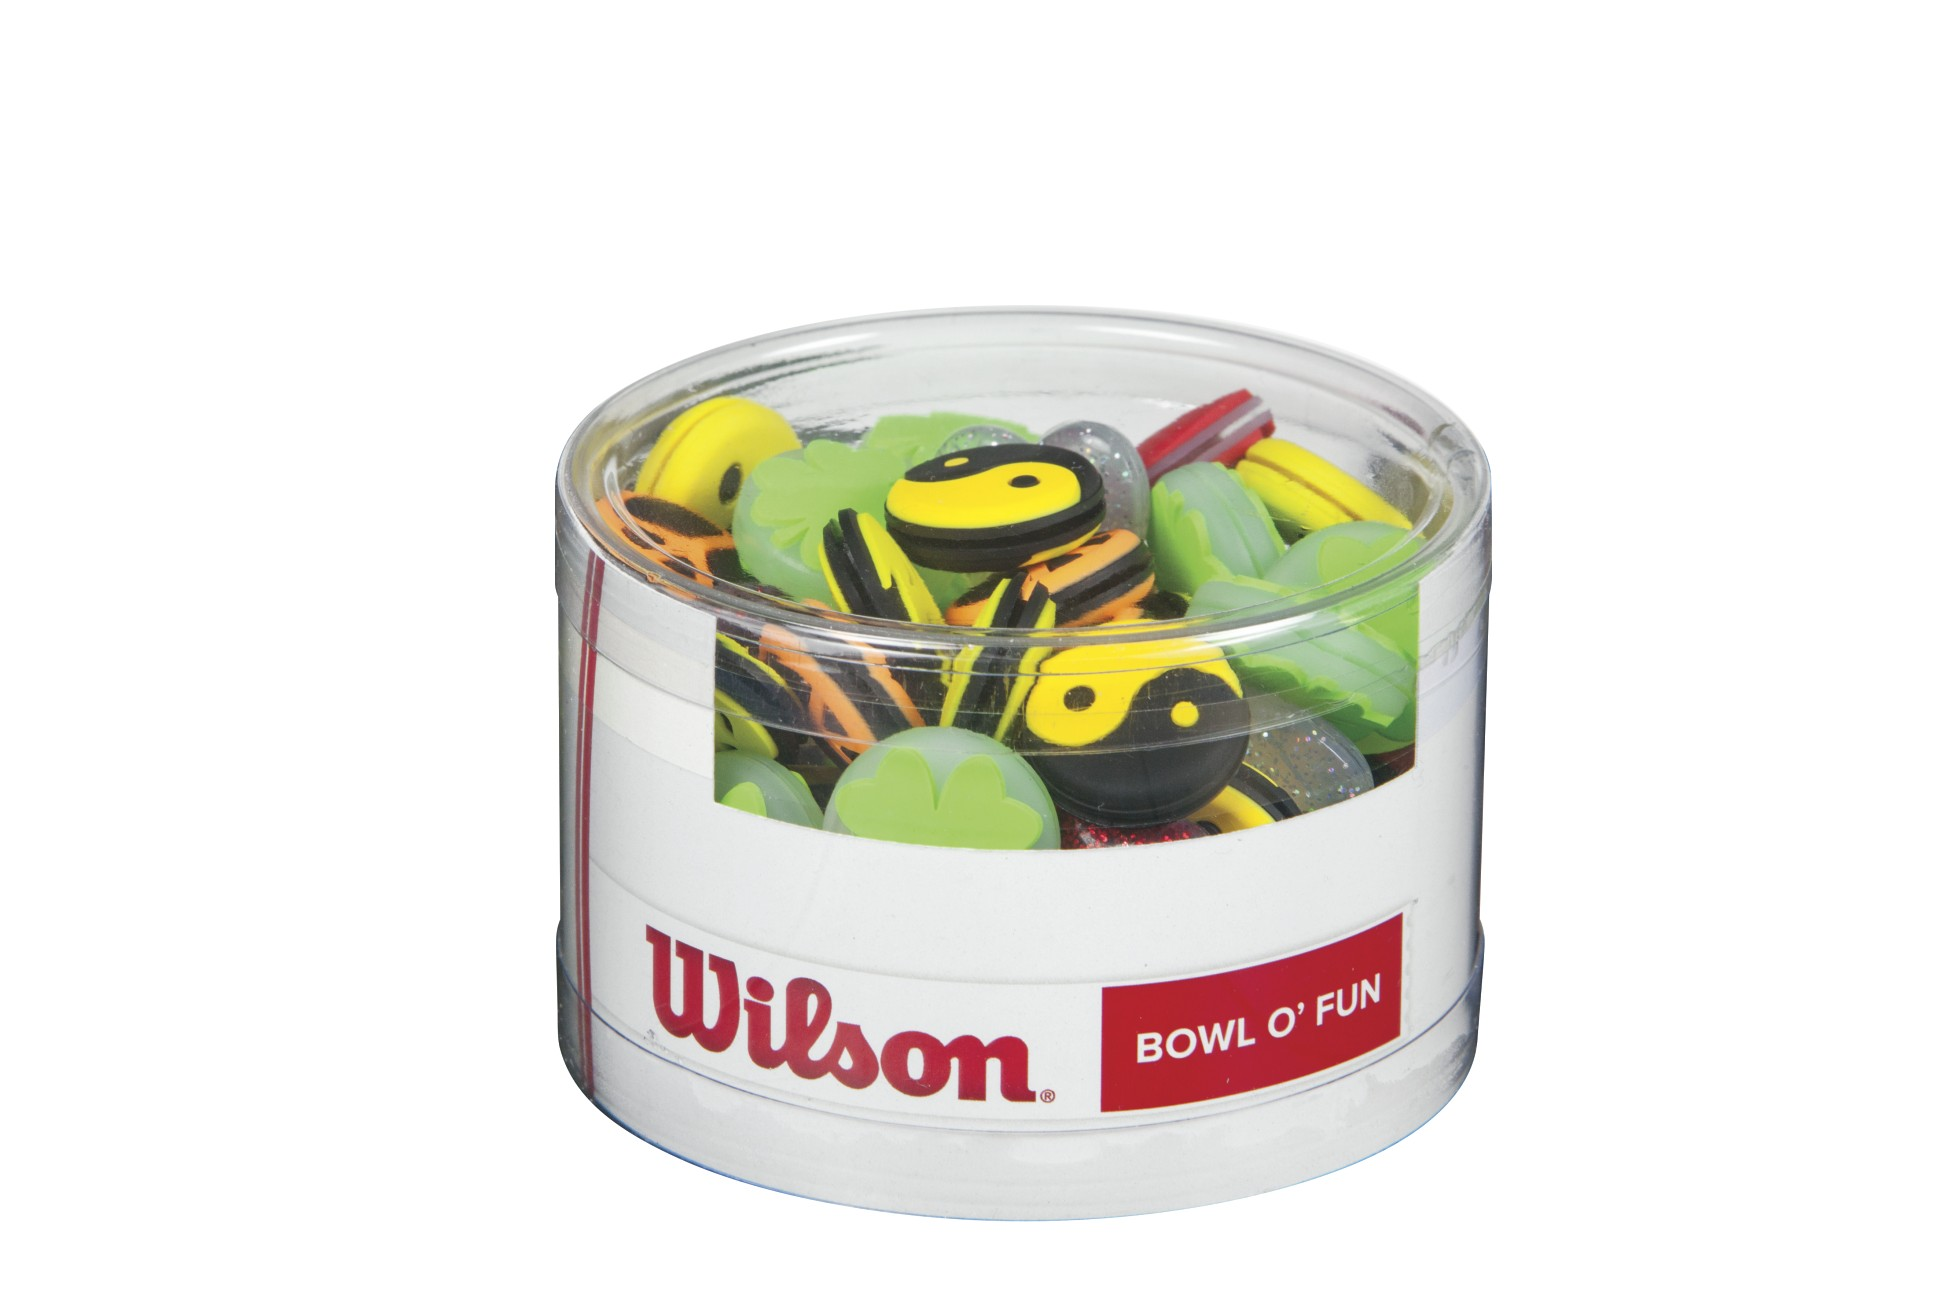 Wilson Bowl O Fun 75ks